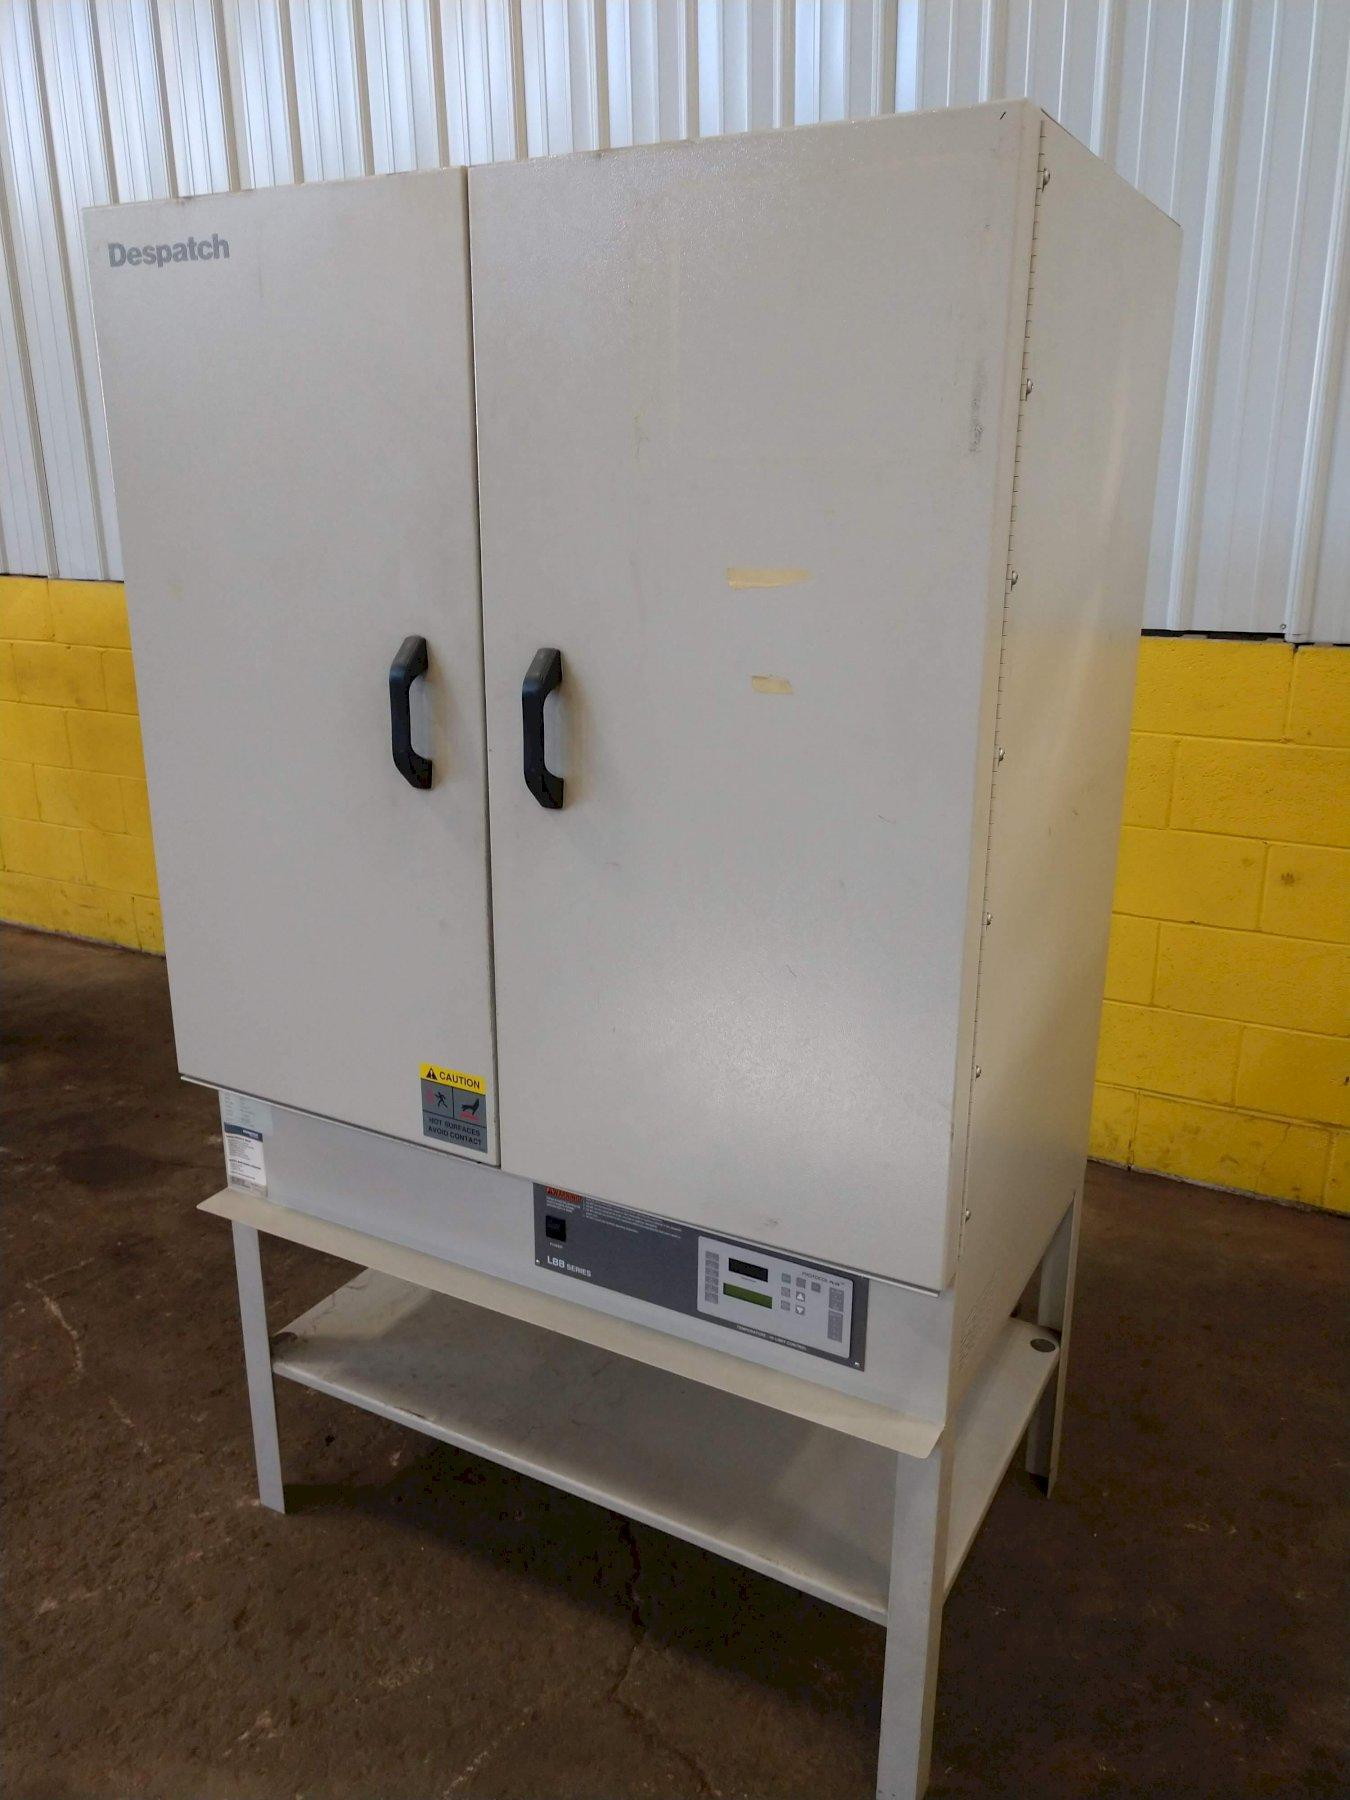 """400 DEGREE X 37"""" W X 24"""" D X 35"""" H DESPACH SERIES LBB2-18-1 ELECTRICAL OVEN: STOCK #13686"""